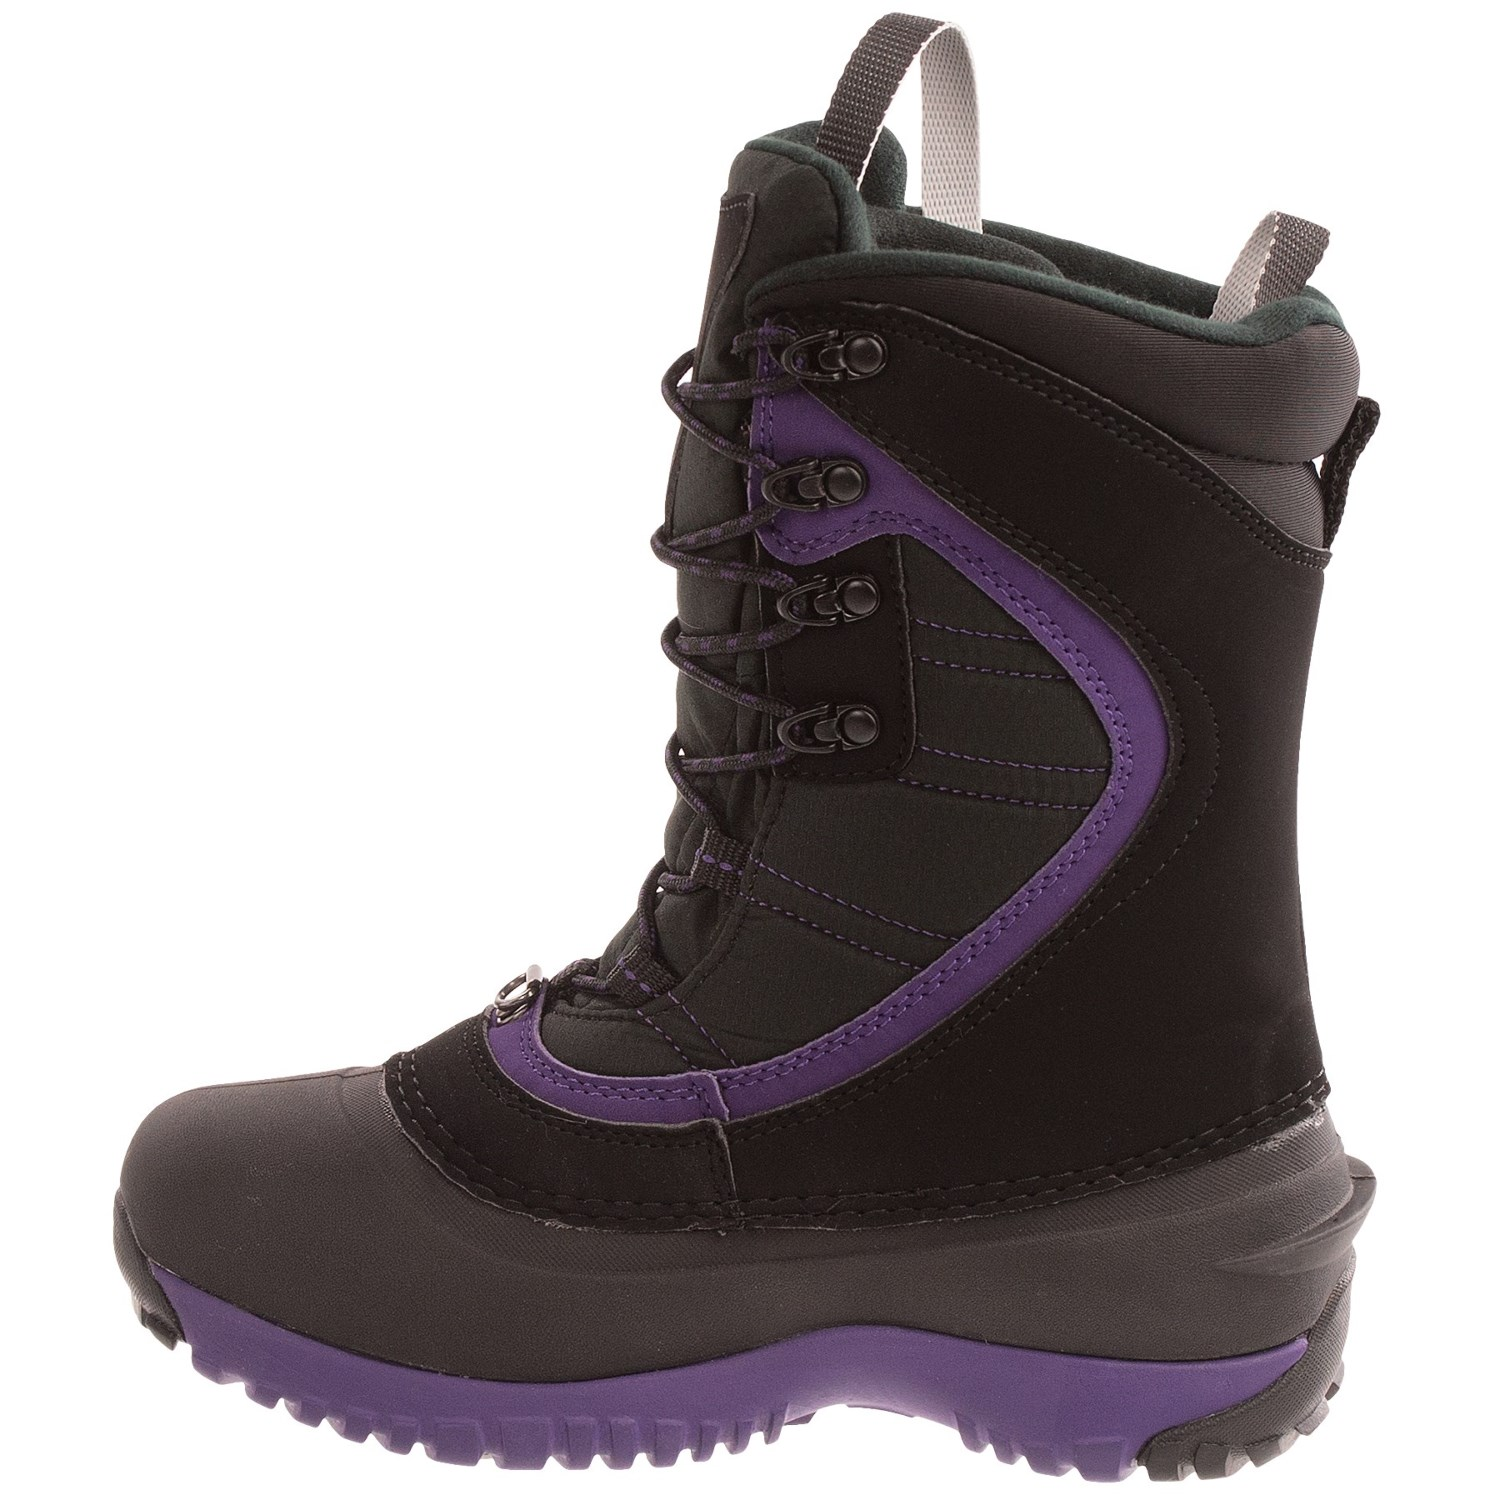 9049G_5 Baffin Alicia Snow Boots - Waterproof, Insulated